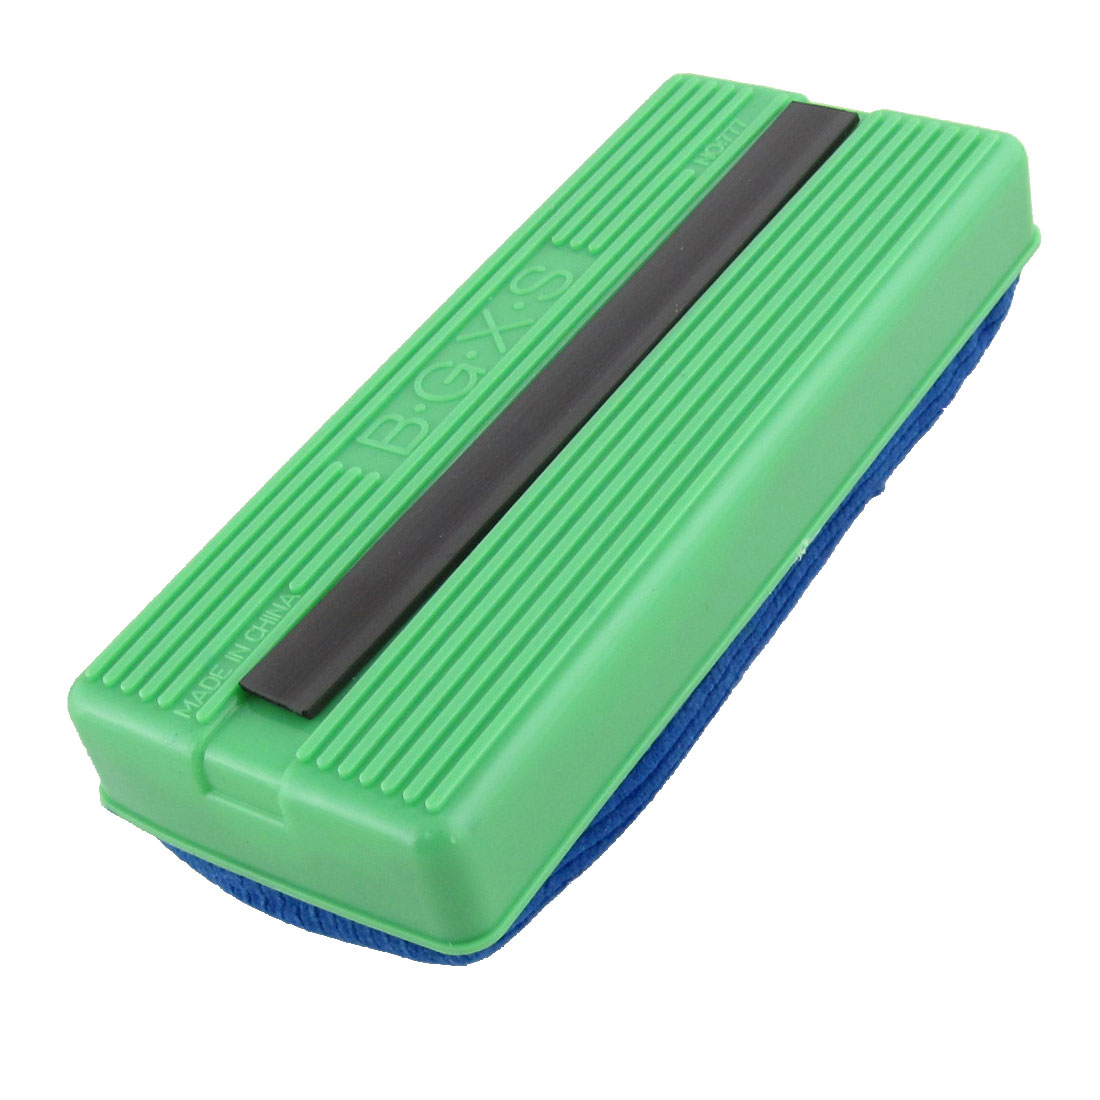 Office Blue Corduroy Magnetic Whiteboard Maker Eraser Cleaner